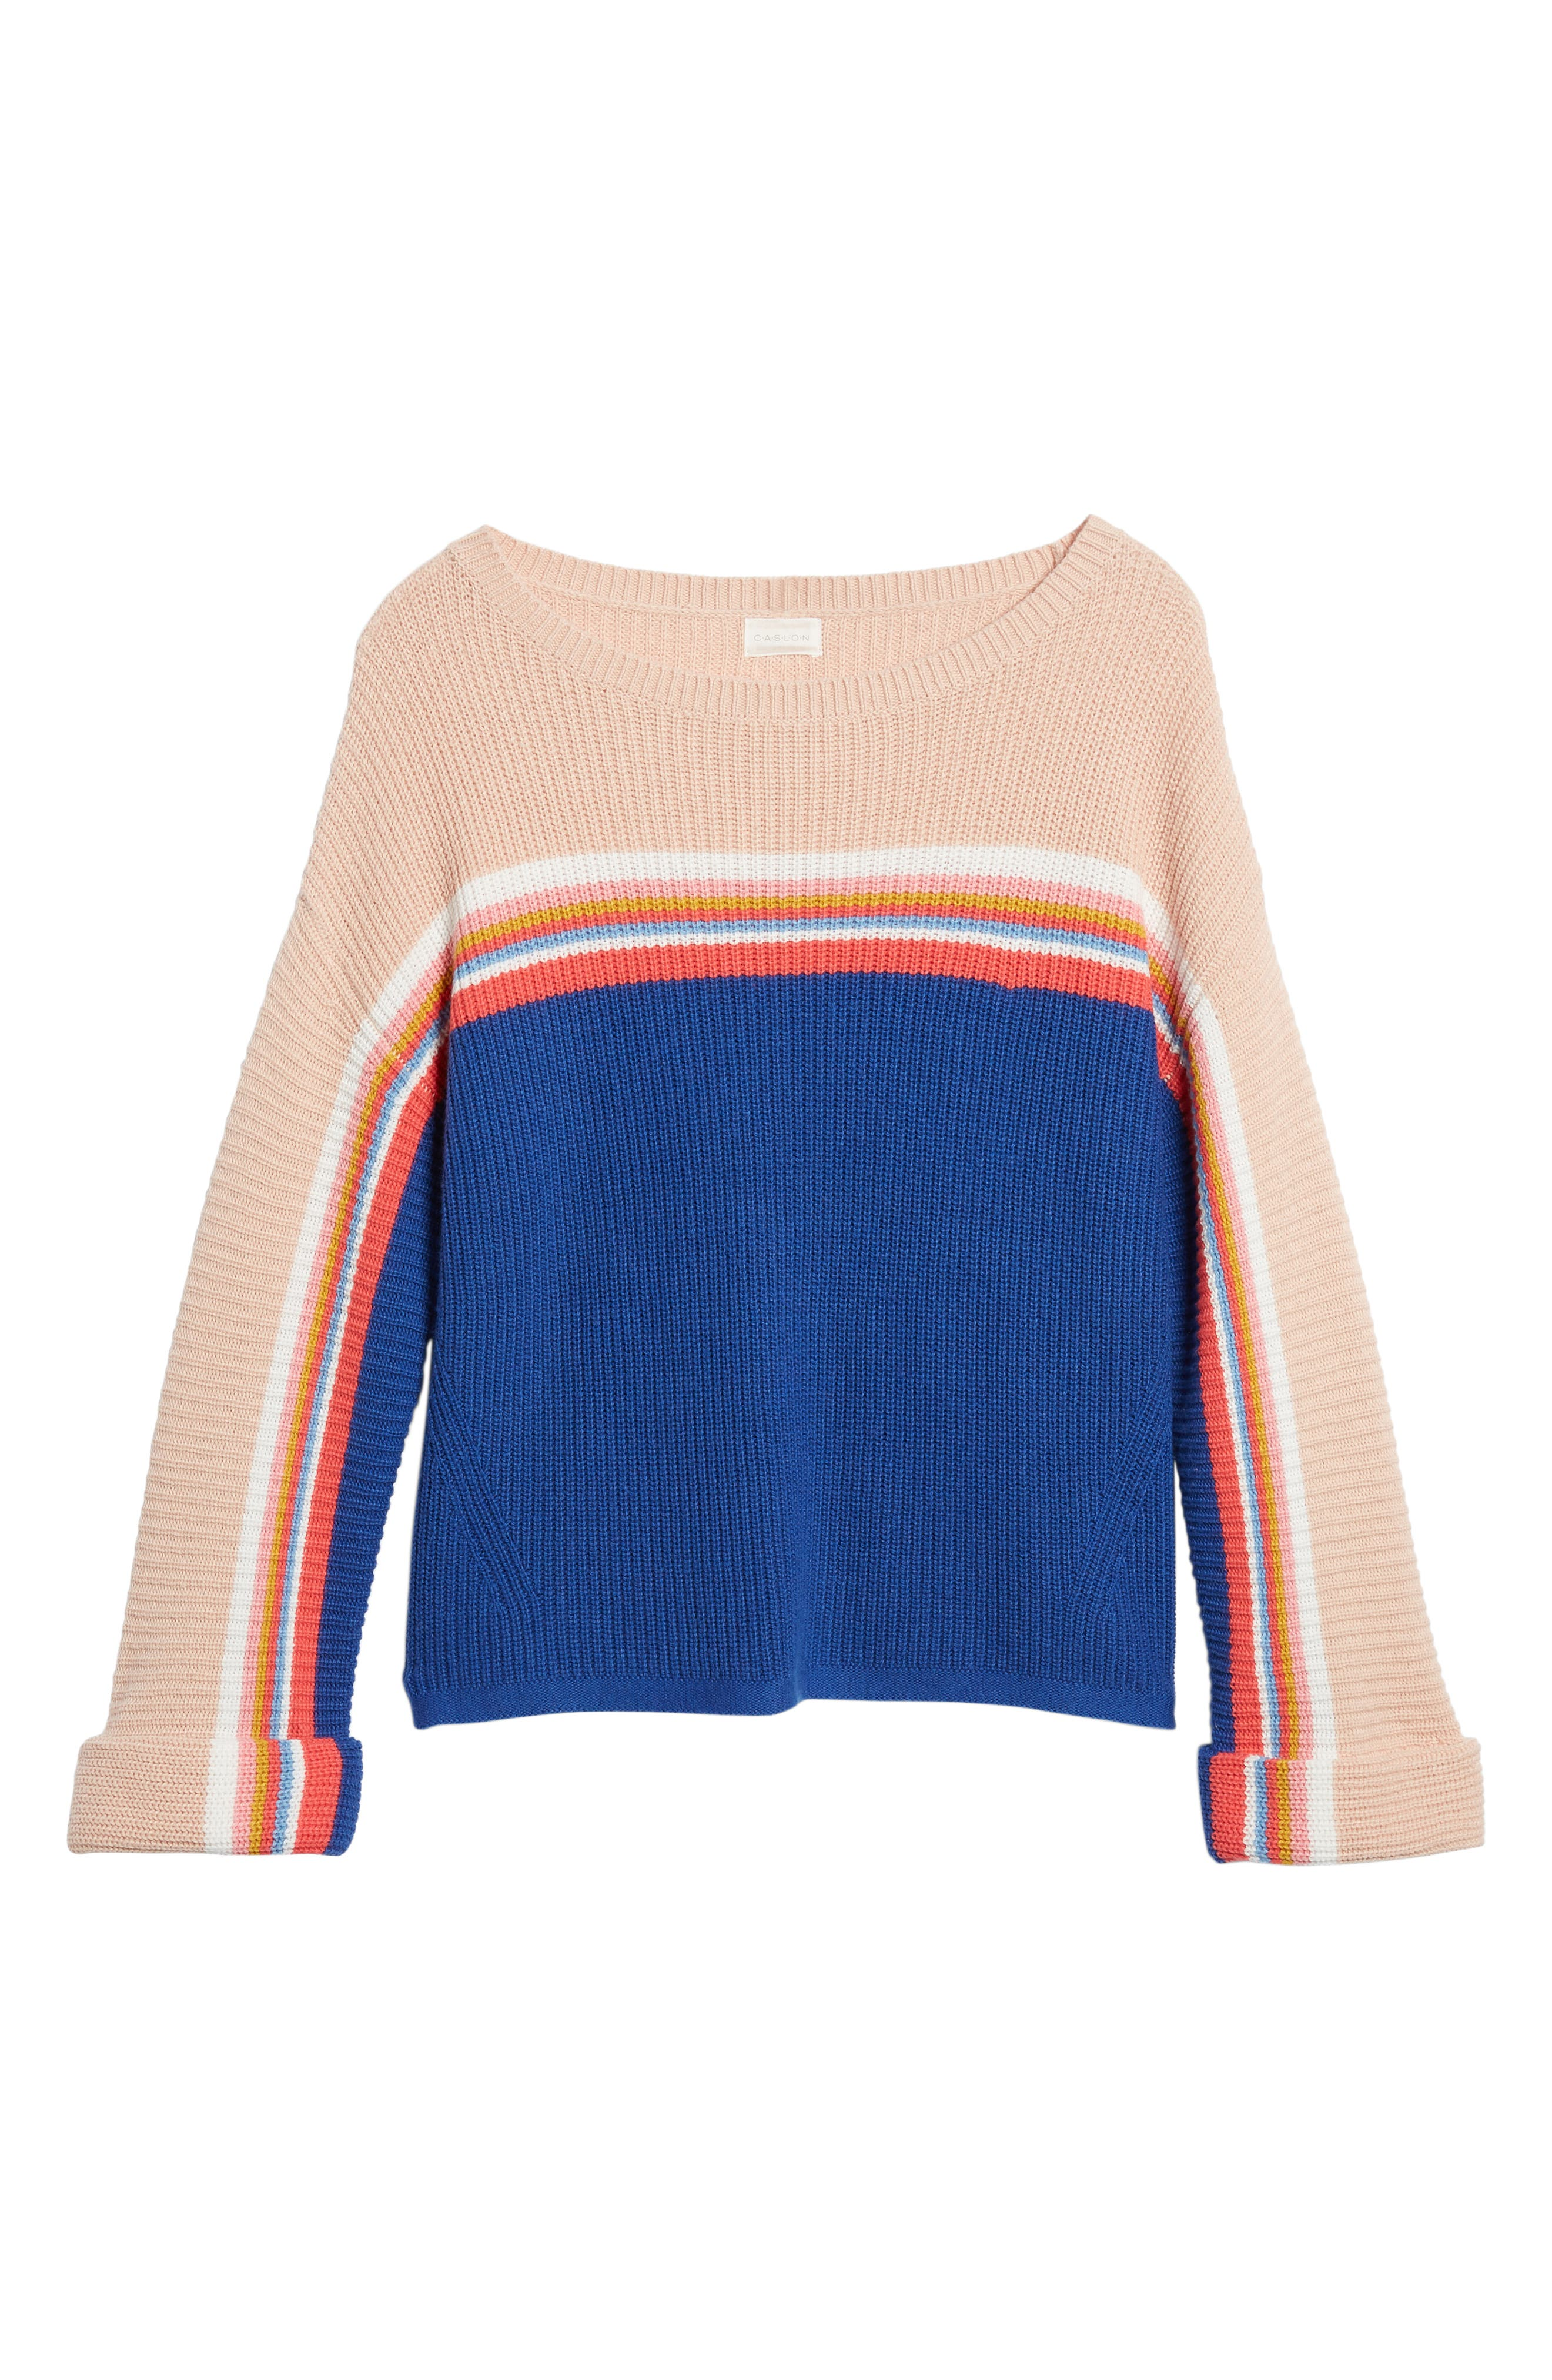 CASLON<SUP>®</SUP>,                             Shaker Stitch Sweater,                             Alternate thumbnail 6, color,                             401